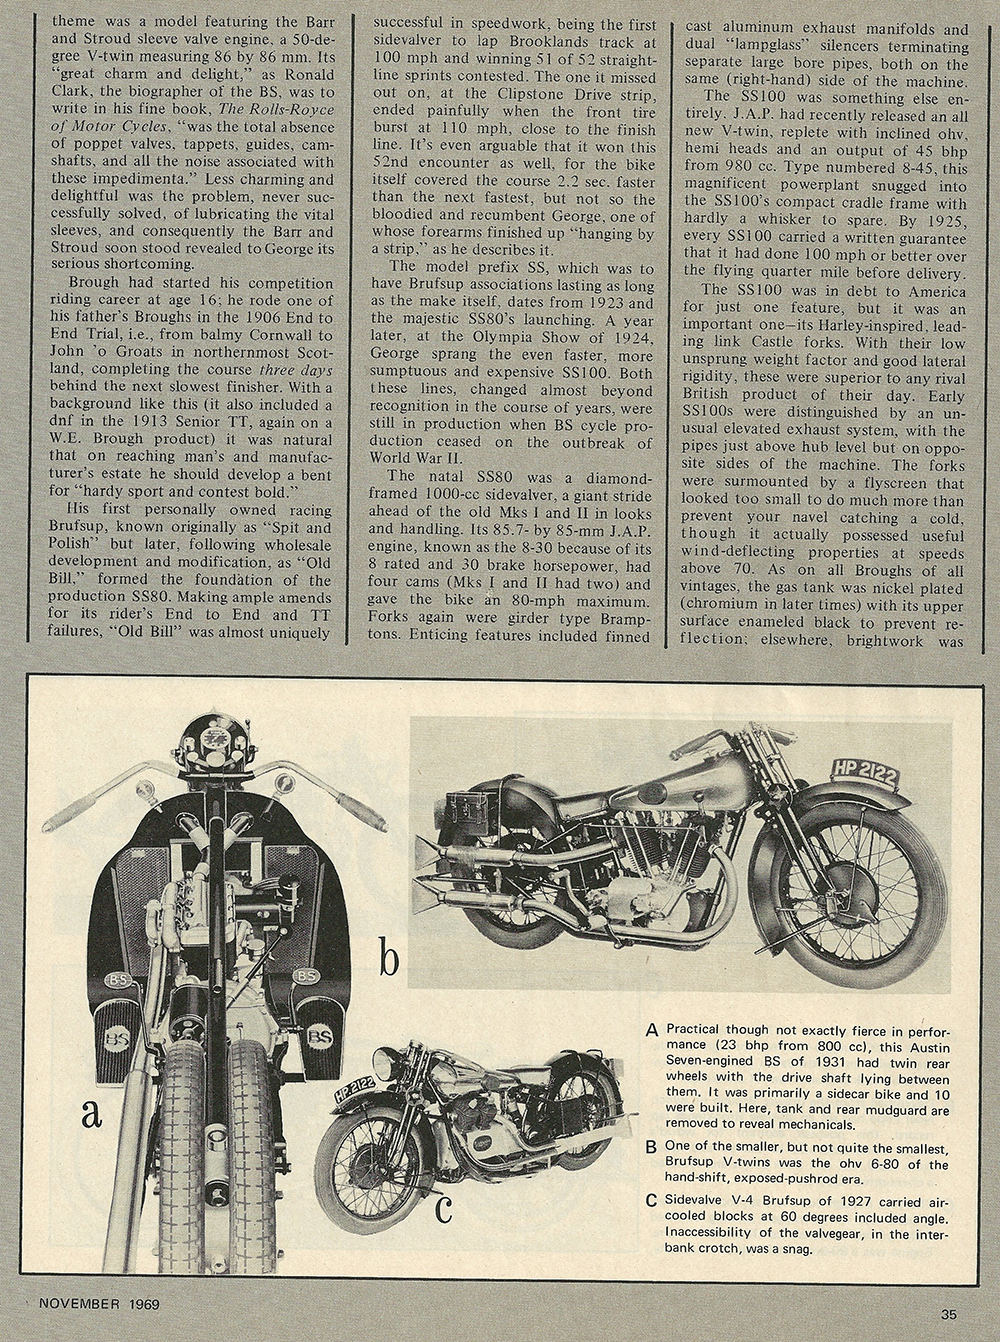 History of Brough Superior 03.jpg